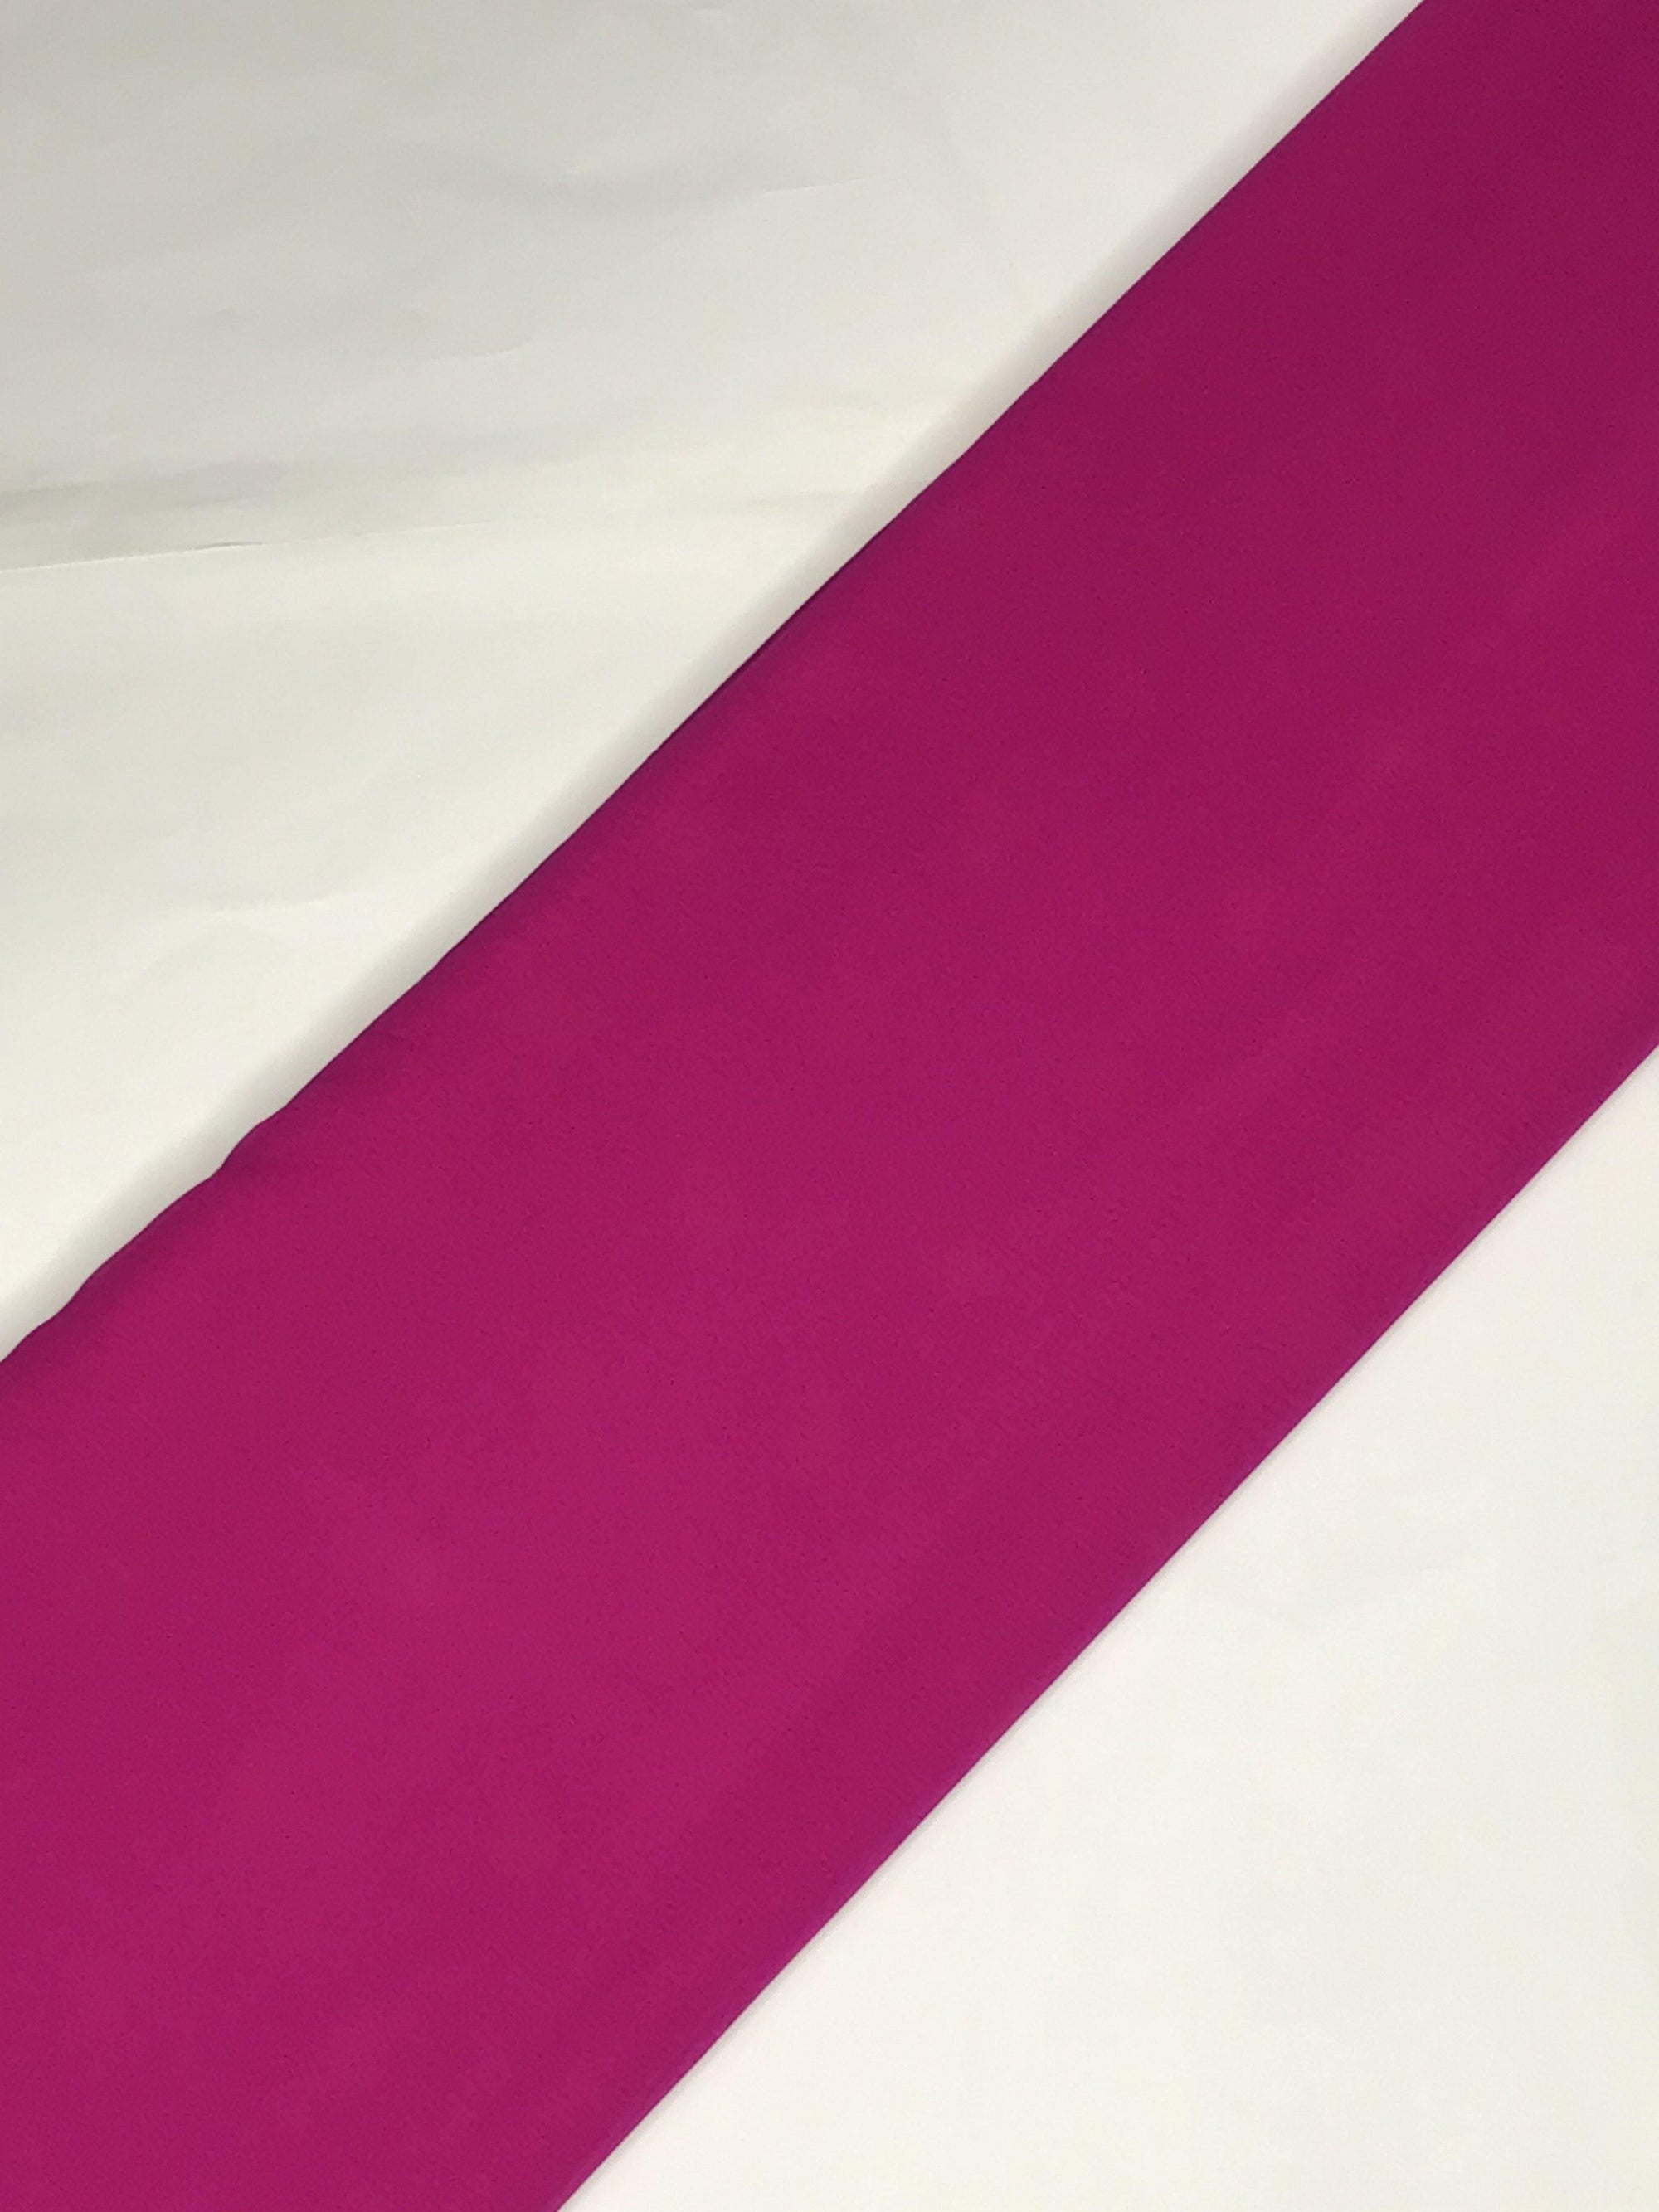 Magenta Georgette Plain Dyed Fabric (Width - 44 inches)